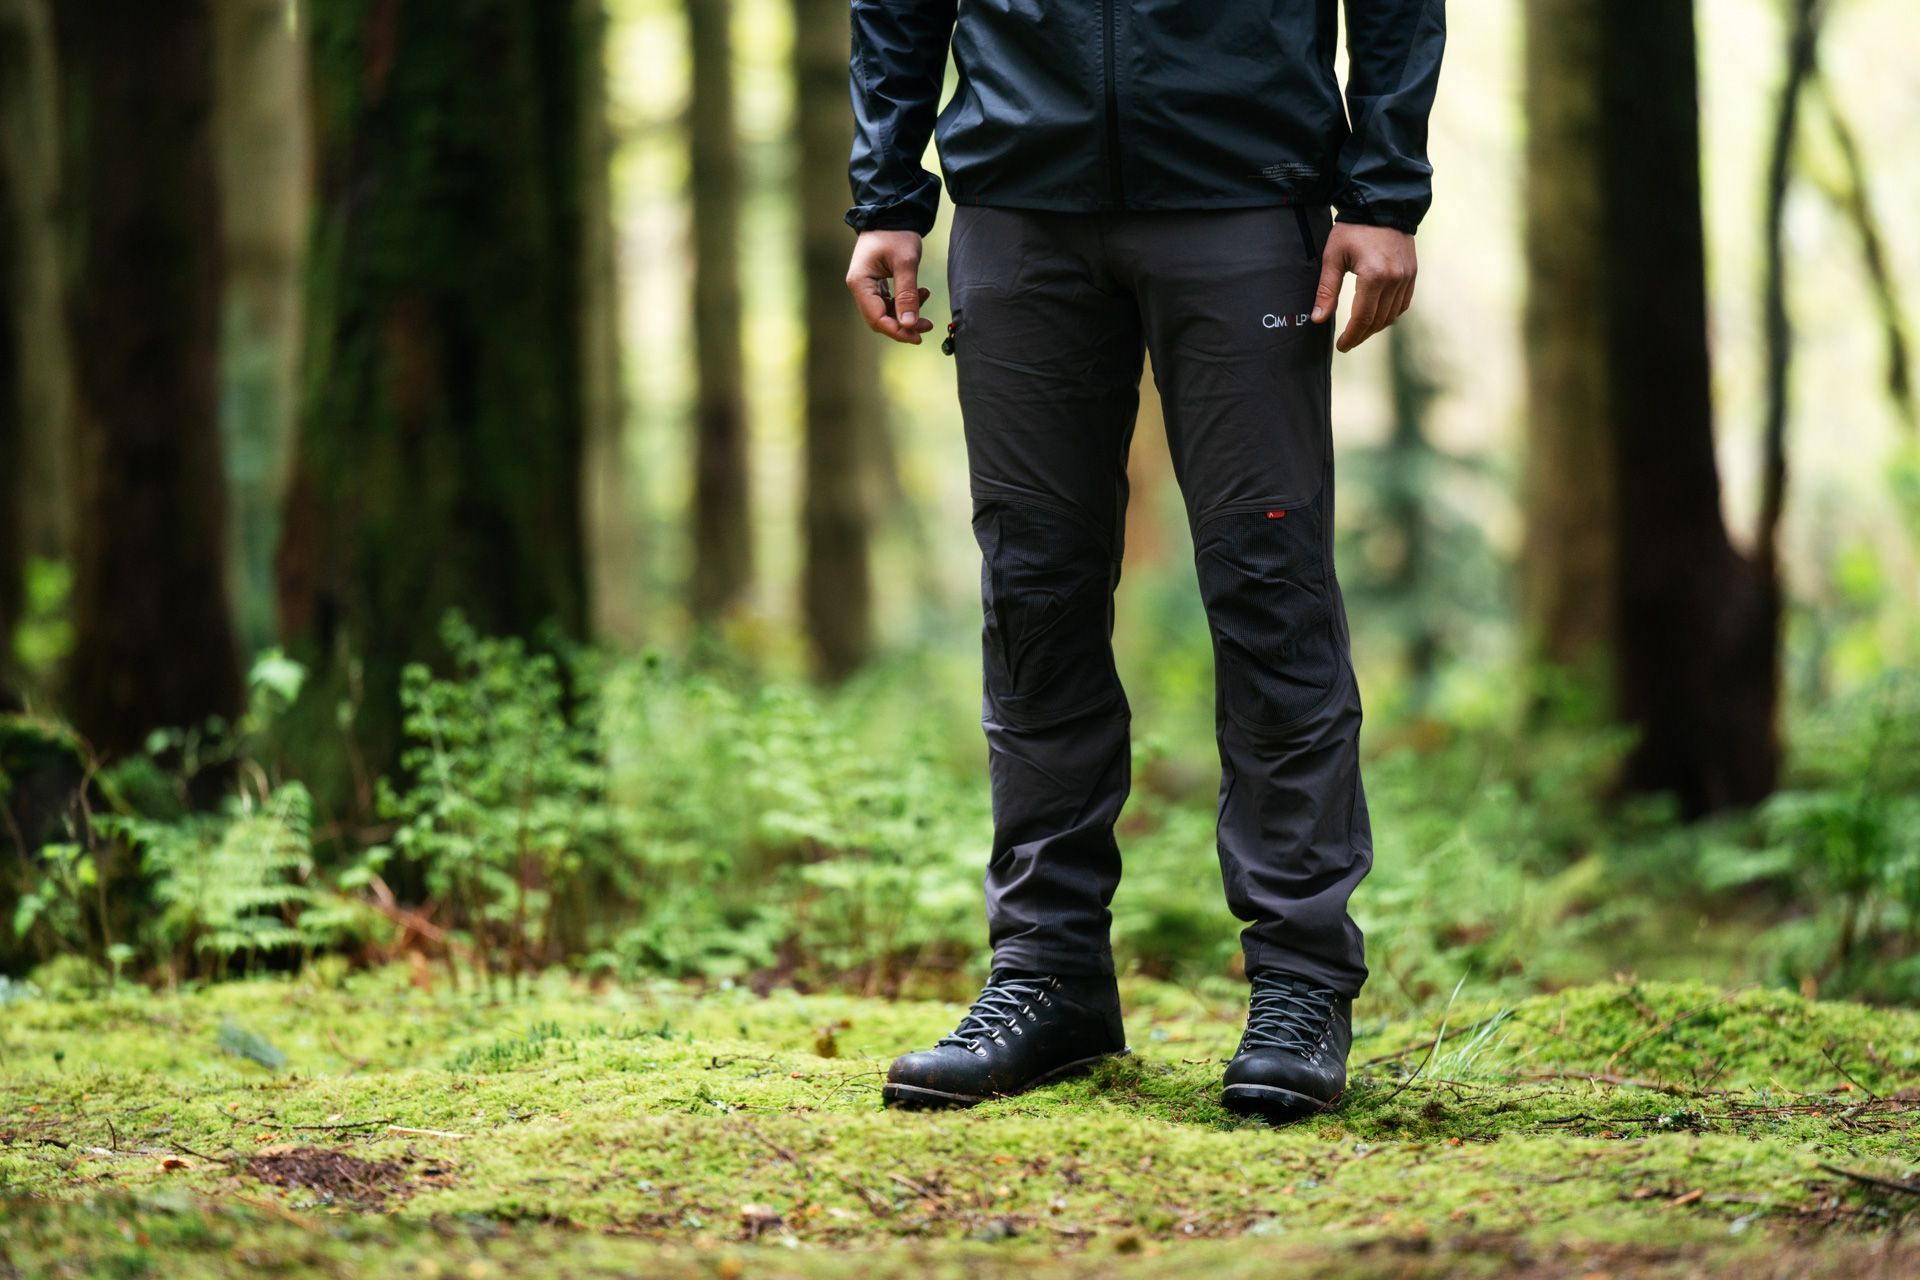 Cimalp Explore H Pants Review Outdoors Magic Hiking Outfit Pants Outdoor Outfit